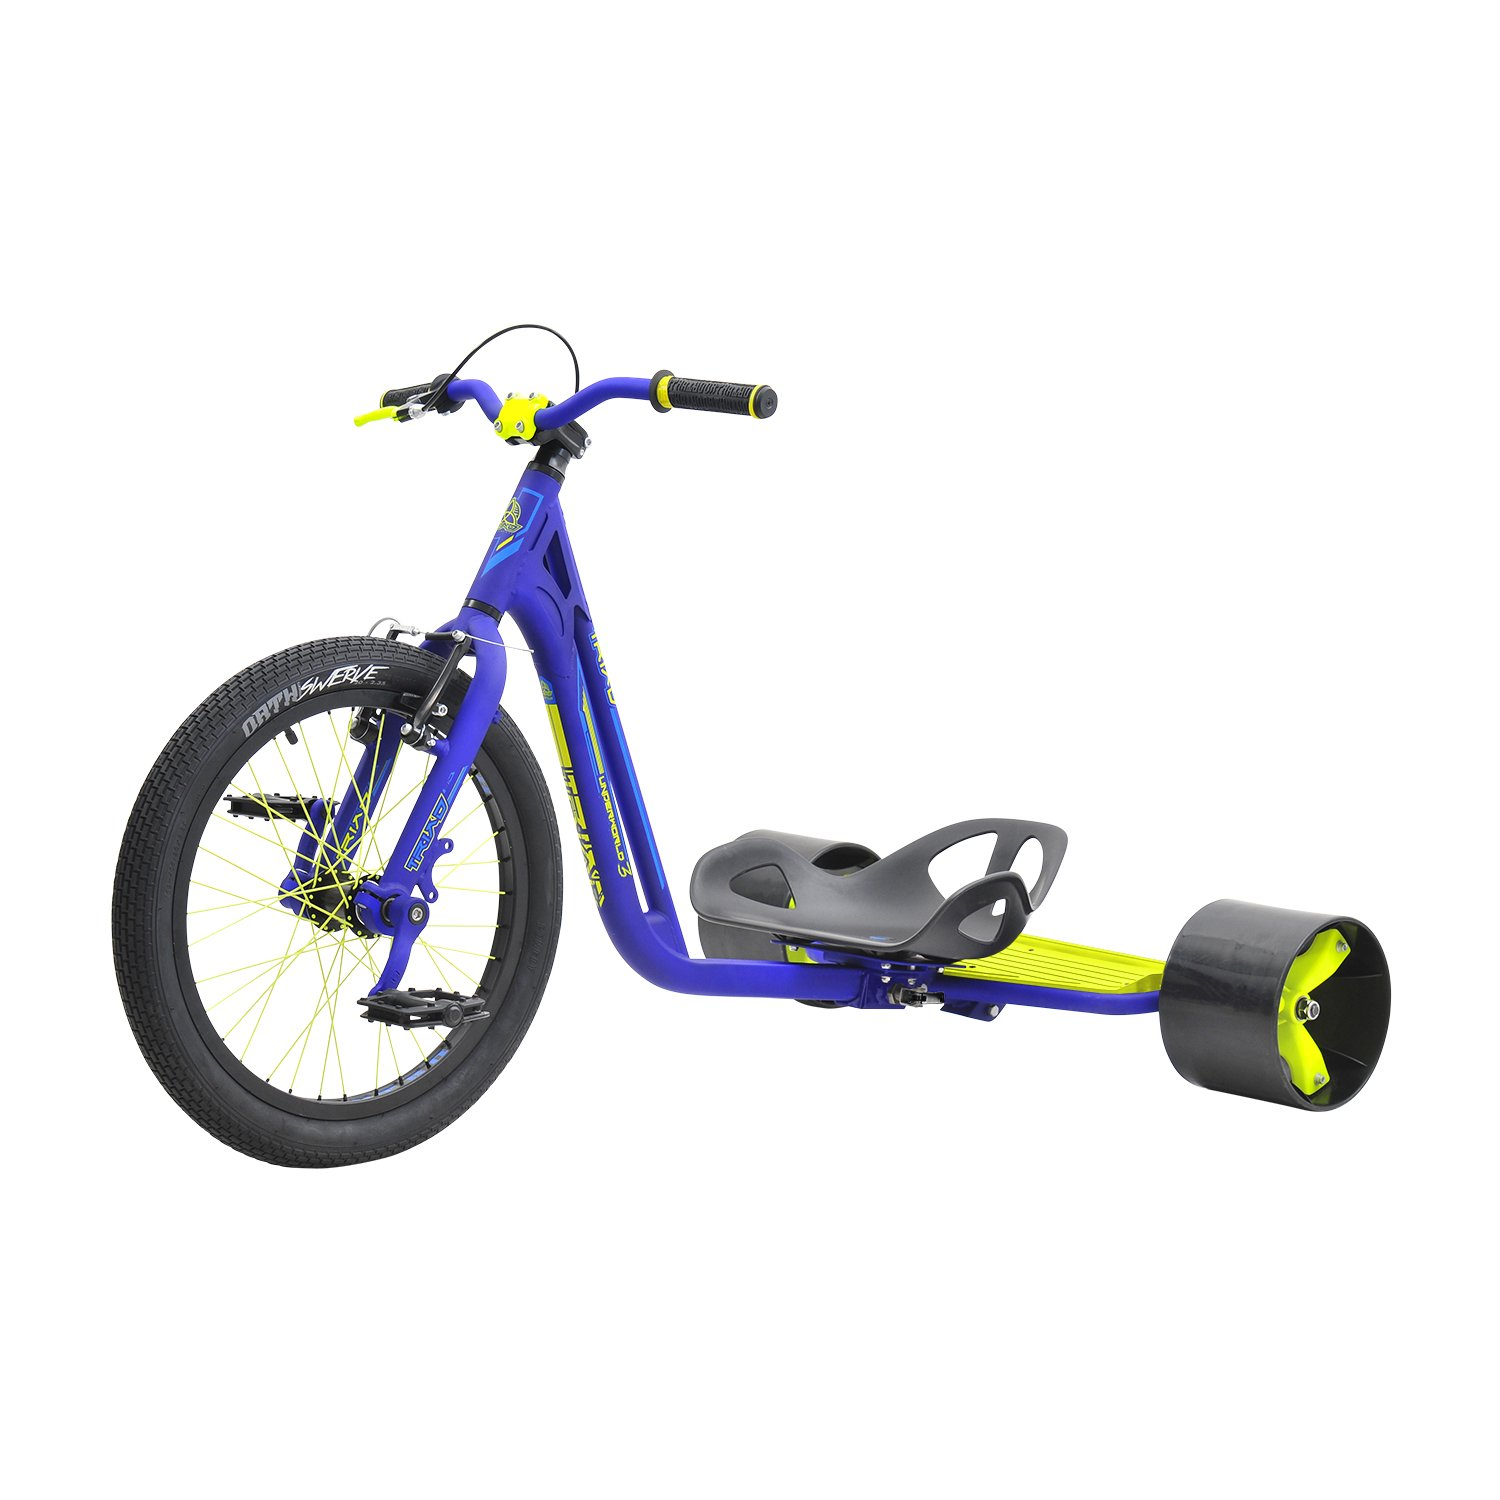 Triad Drift Trikes Underworld 3 Velo Enfant Mixte Adulte, Bleu/Jaune: Amazon.es: Deportes y aire libre